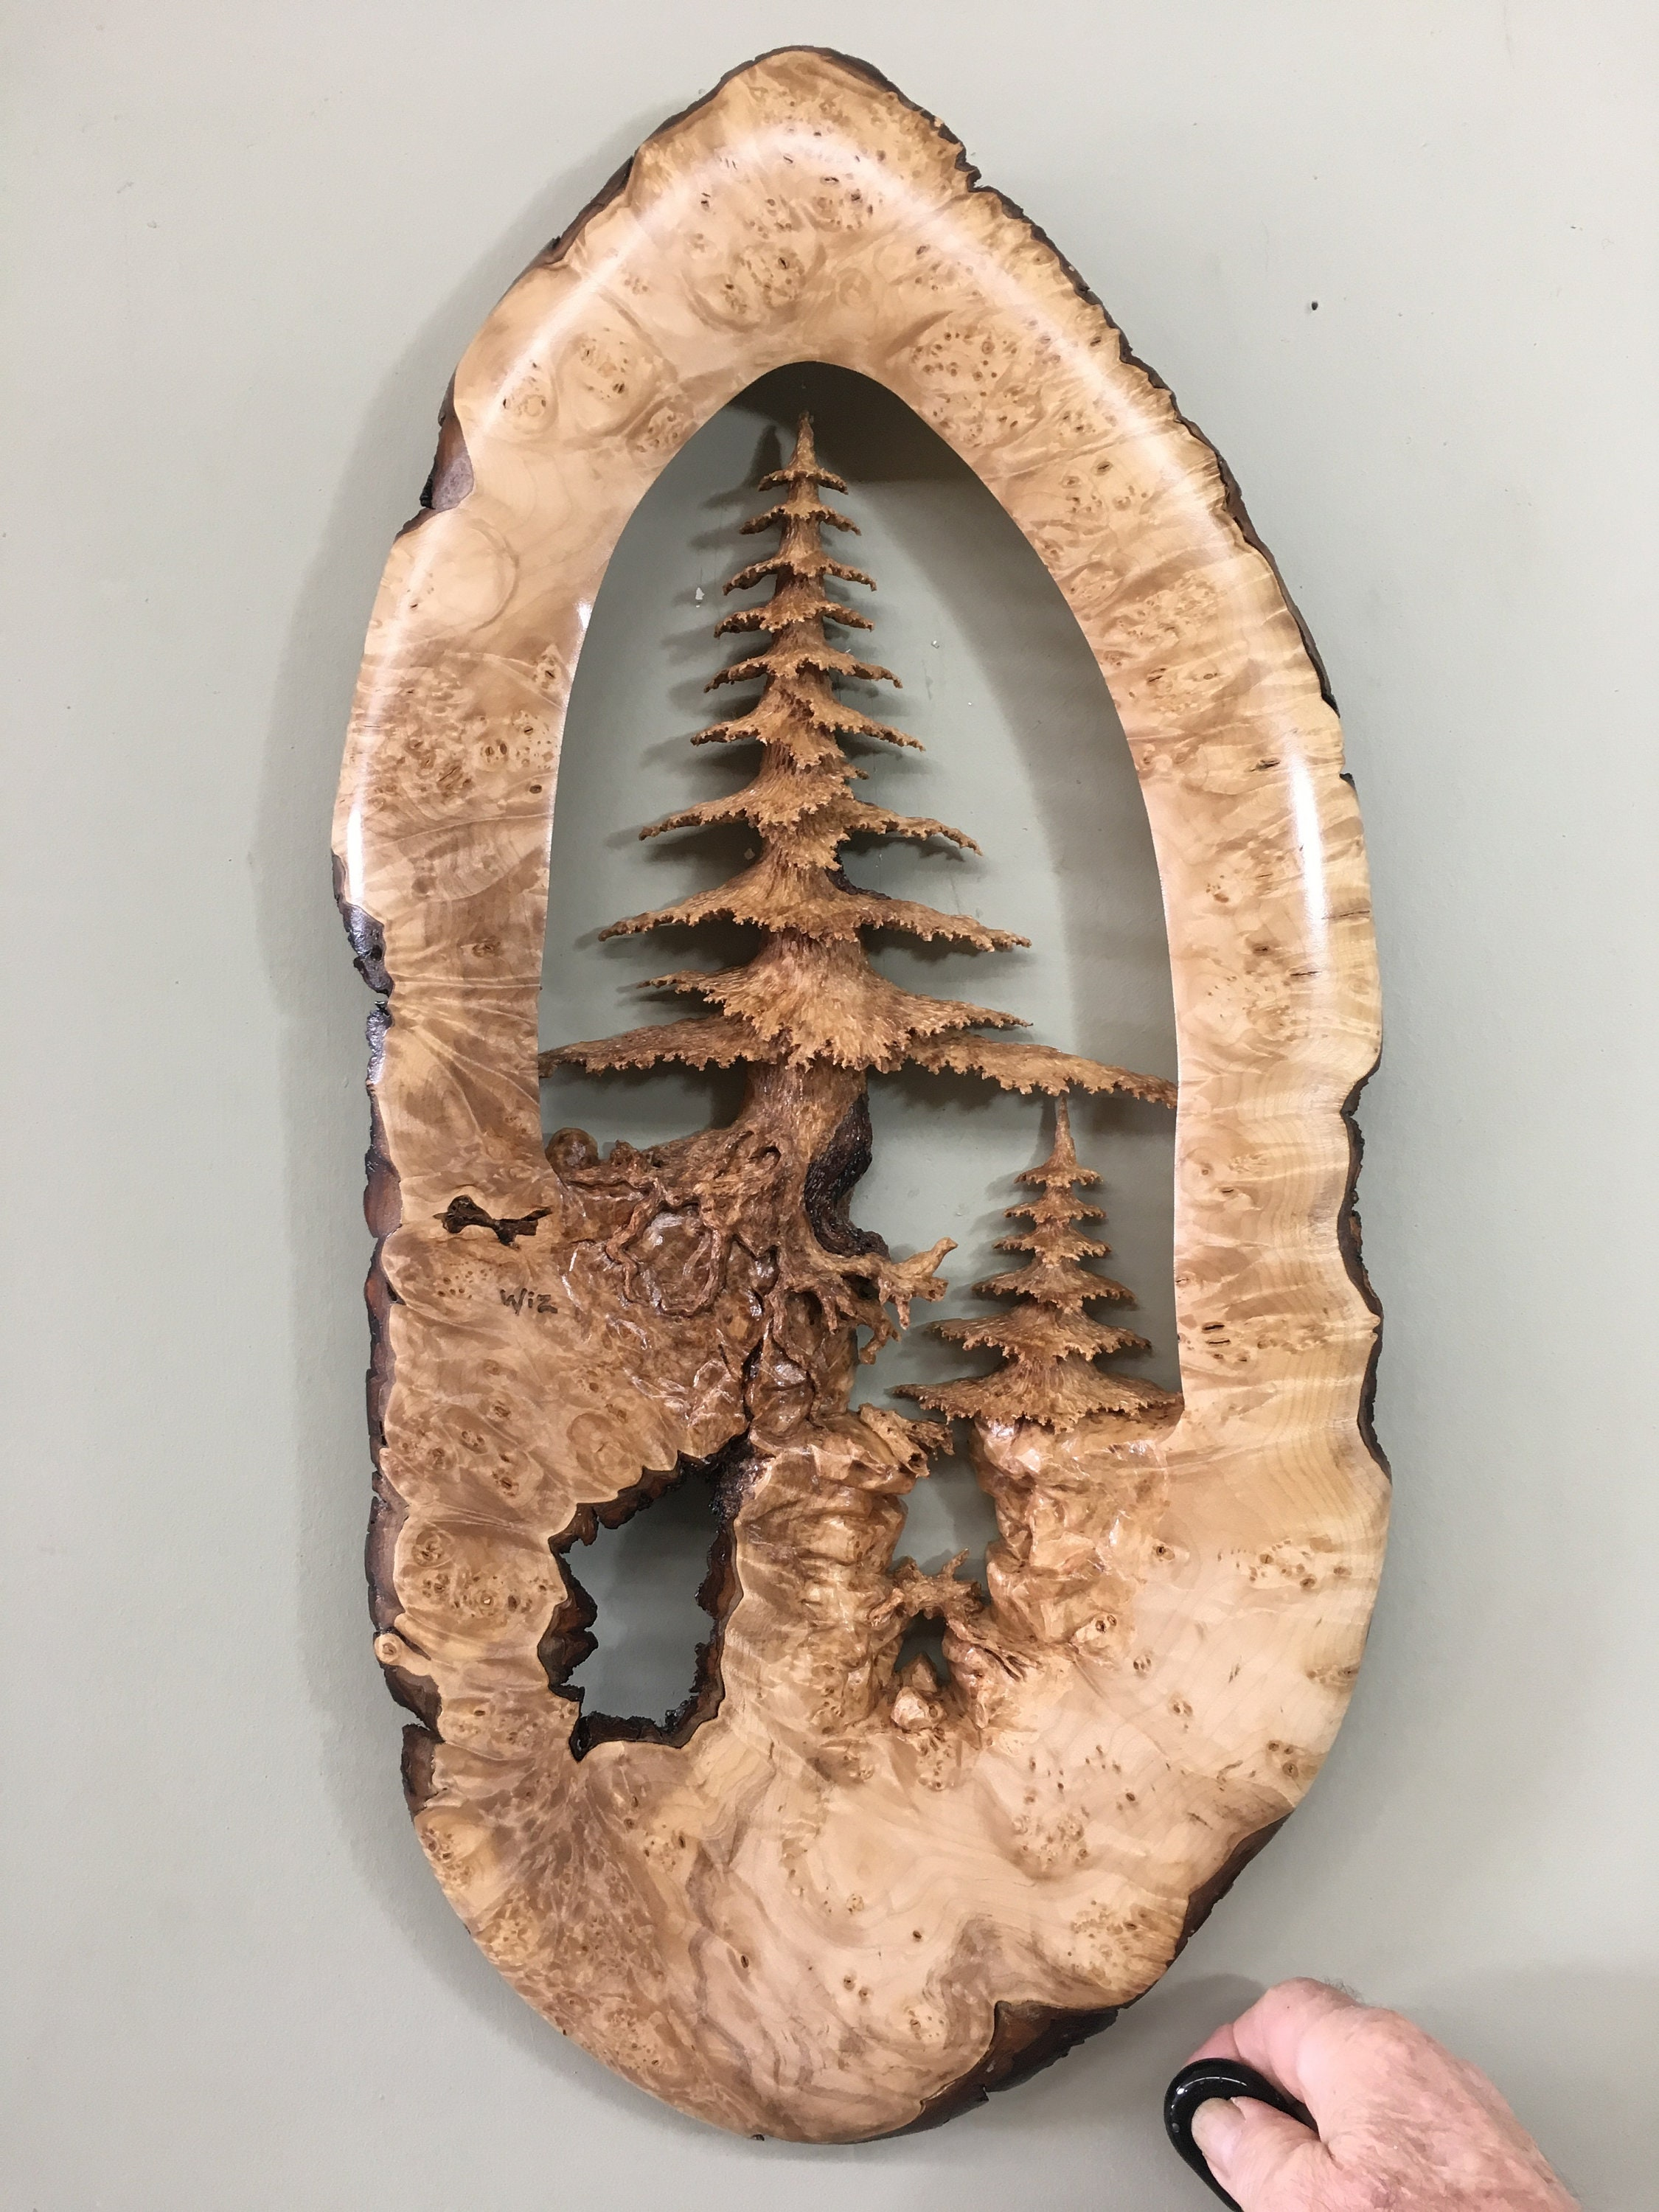 Tree wood carving wall sculpture special best gift ever present